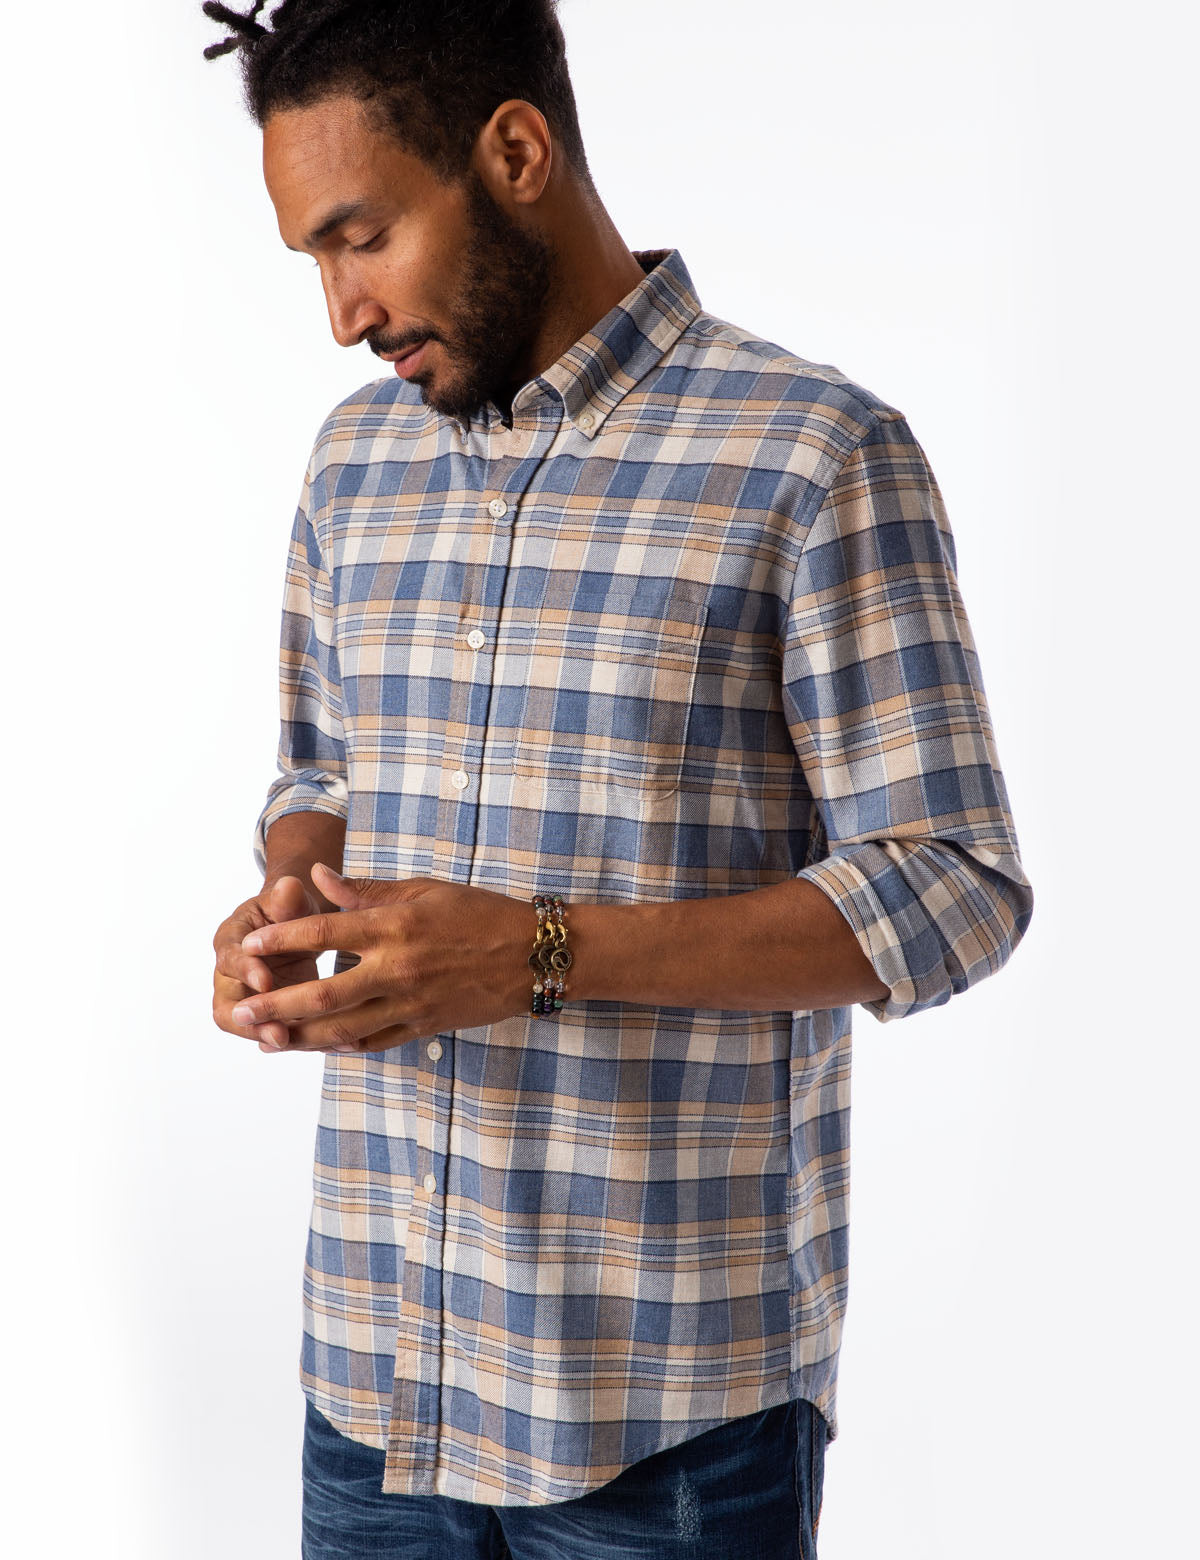 HEATHERED CANVAS PLAID SHIRT - U.S. Polo Assn.